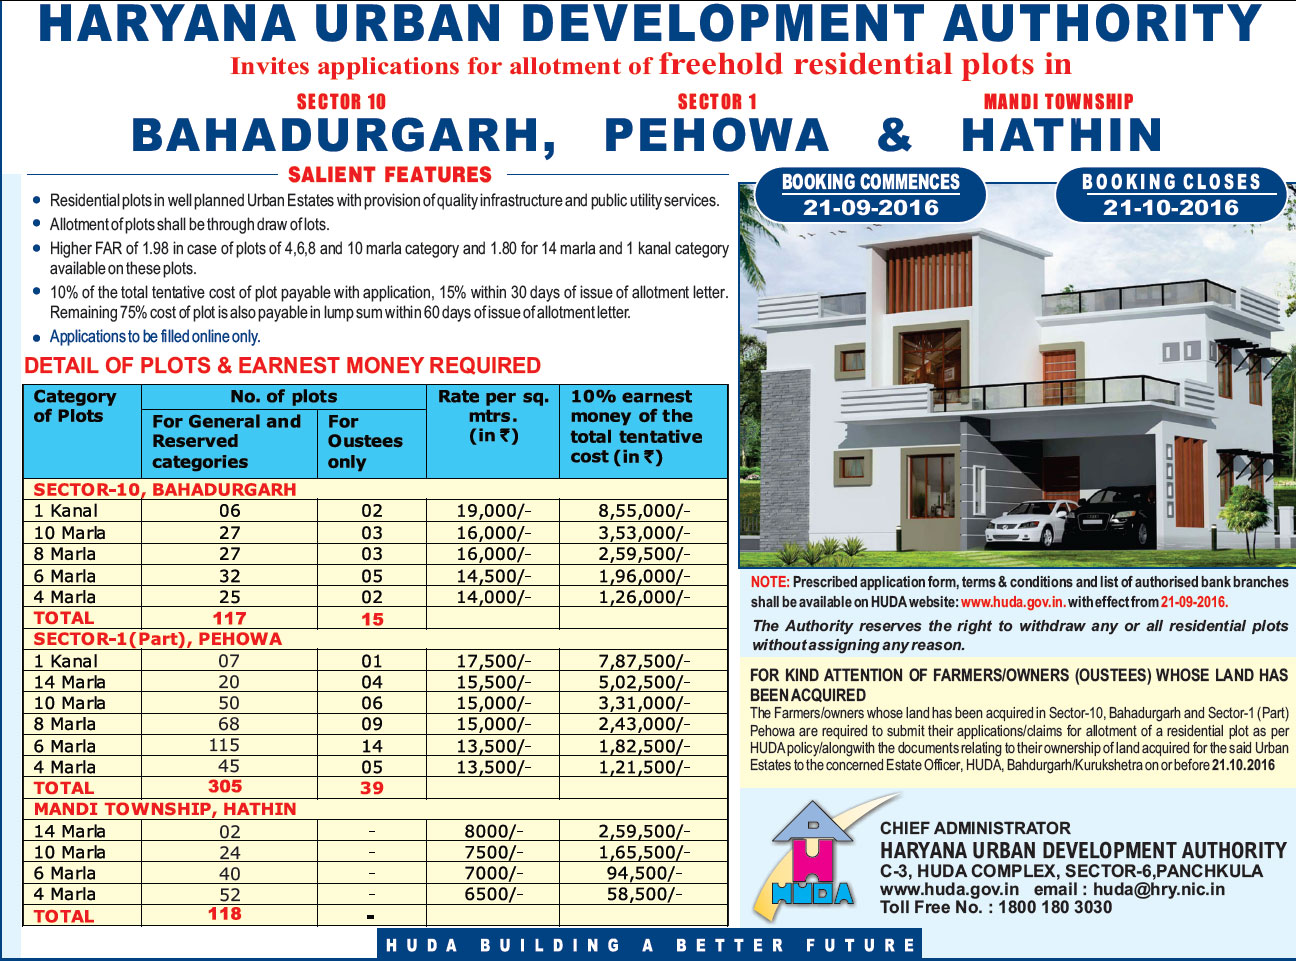 HUDA New Freehold Plot Scheme 2016 Scheme Advertisement